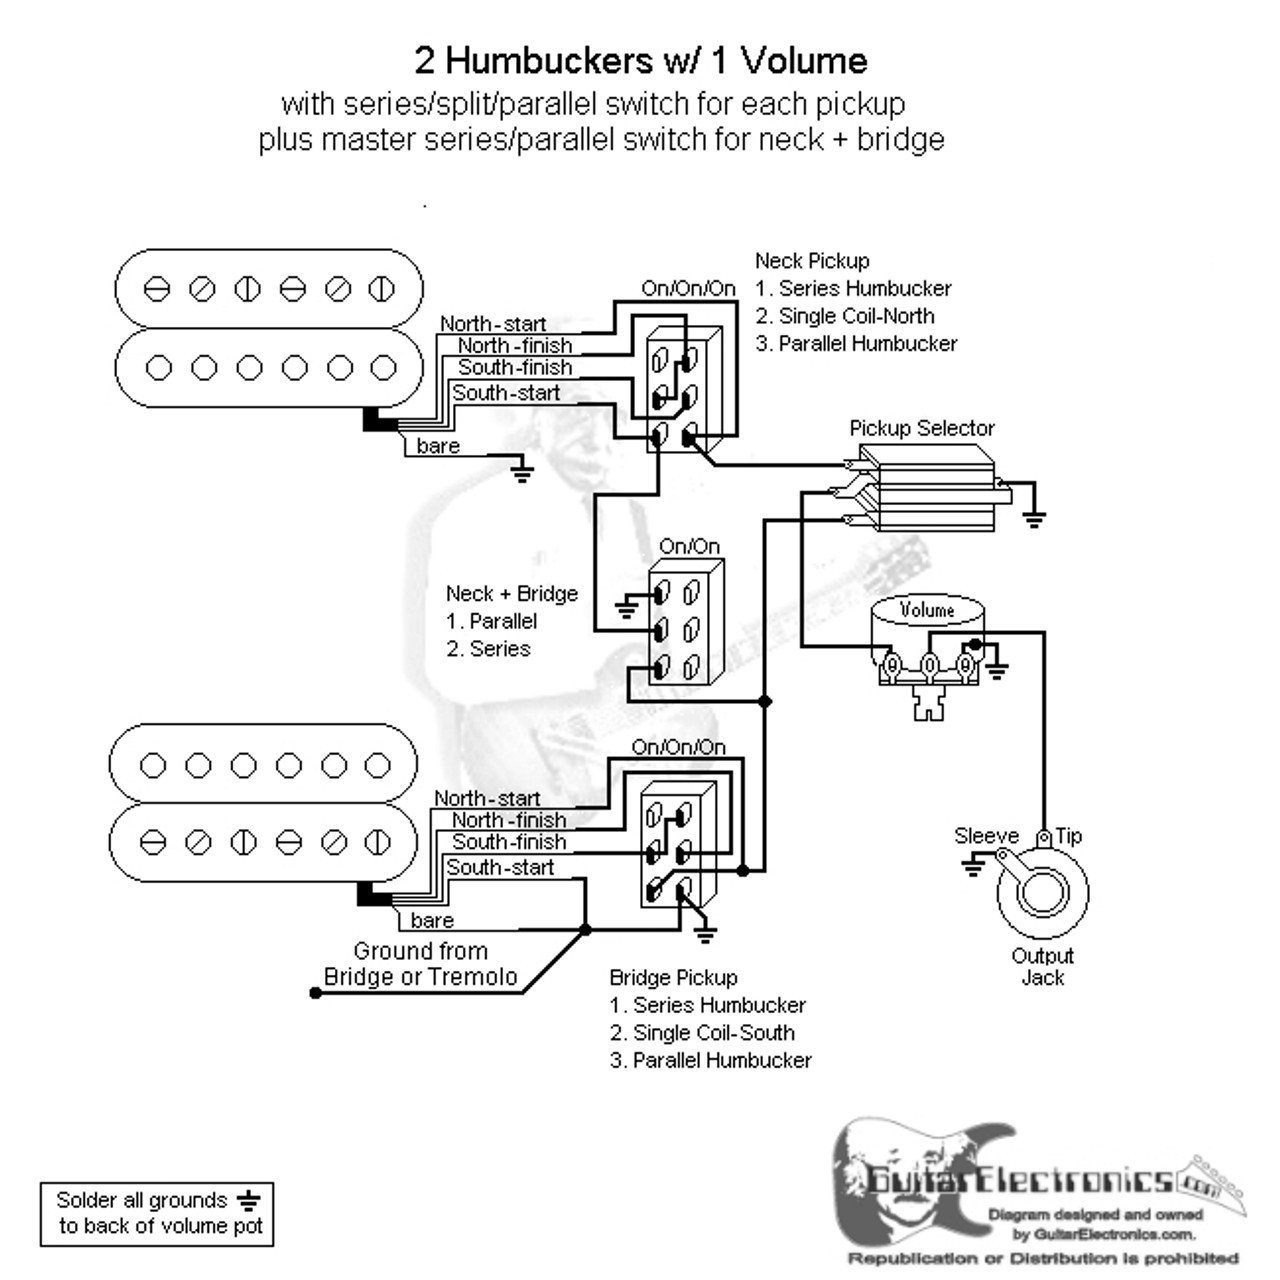 hight resolution of  pickup wiring this diagram shows how to 2 hbs 3 way toggle 1 vol series split parallel u0026 master series parallelfor split